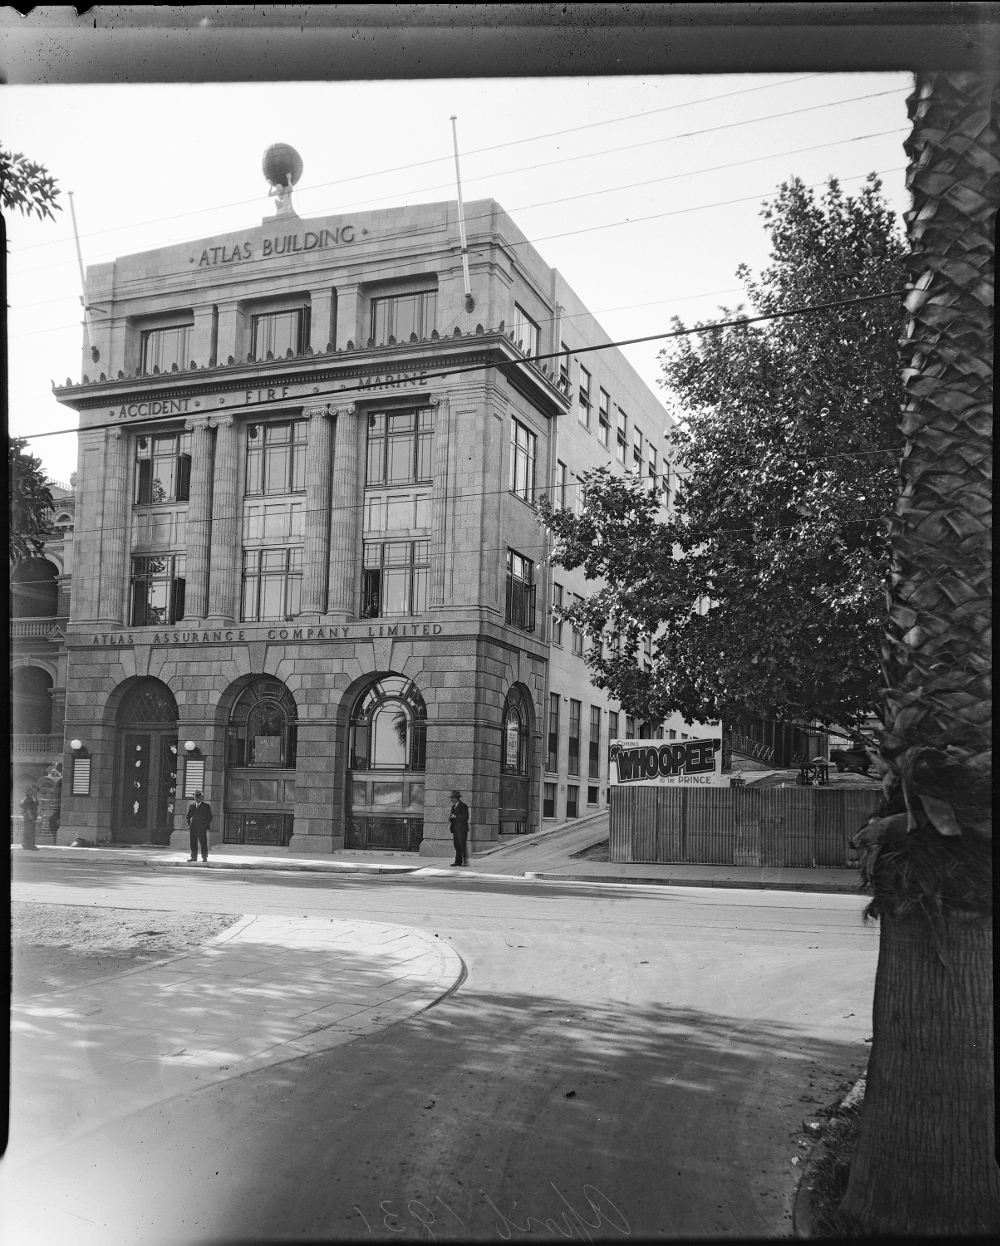 April 1931 Atlas Building State Library of Western Australia Image: SLWA 095.427P